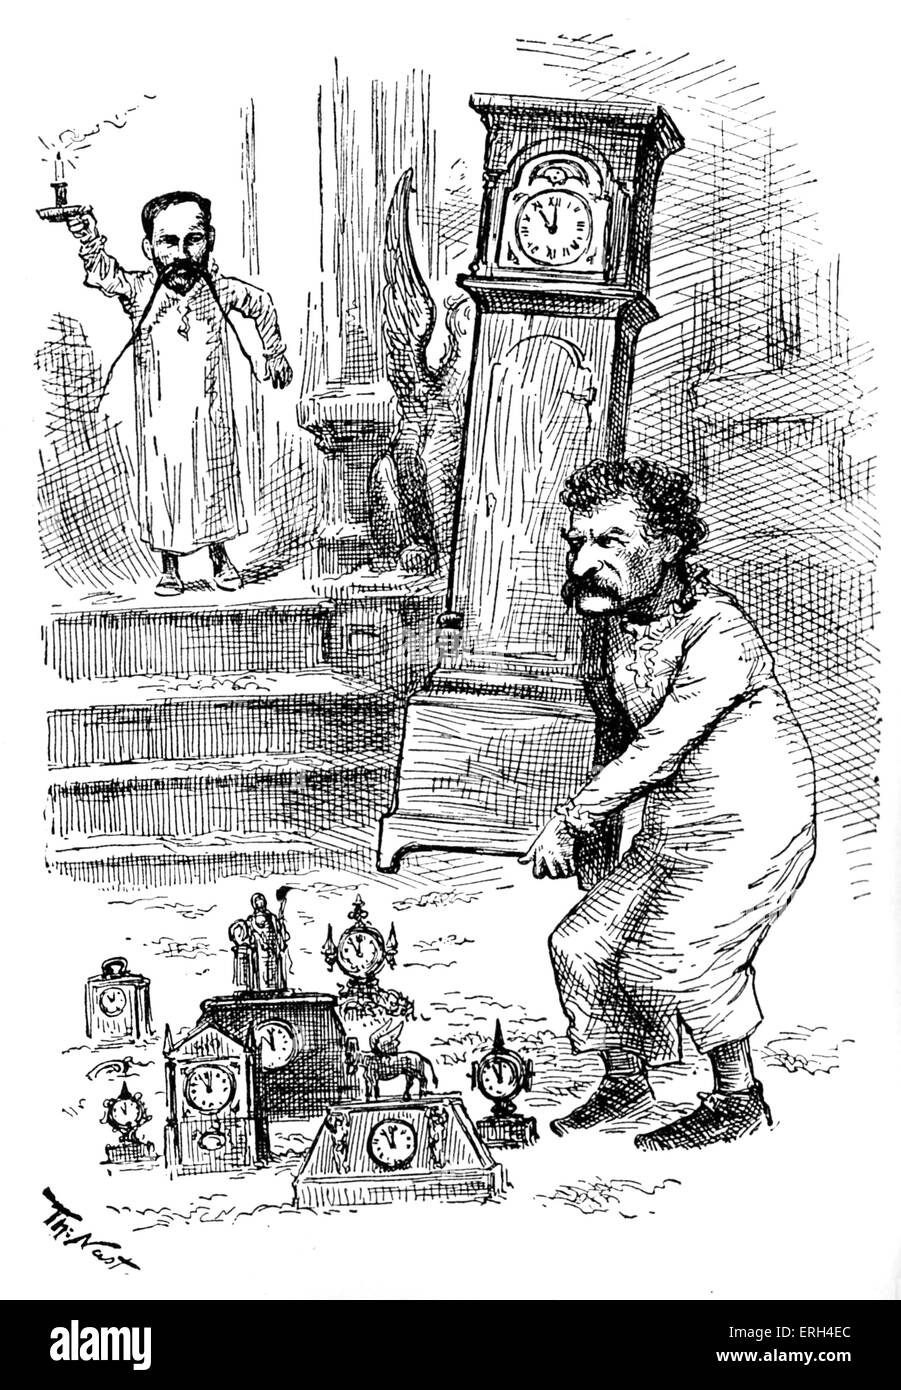 Mark Twain and the Clocks, caricature by Thomas Nast. (MT slept at Thomas Nast's house and turned off all the - Stock Image